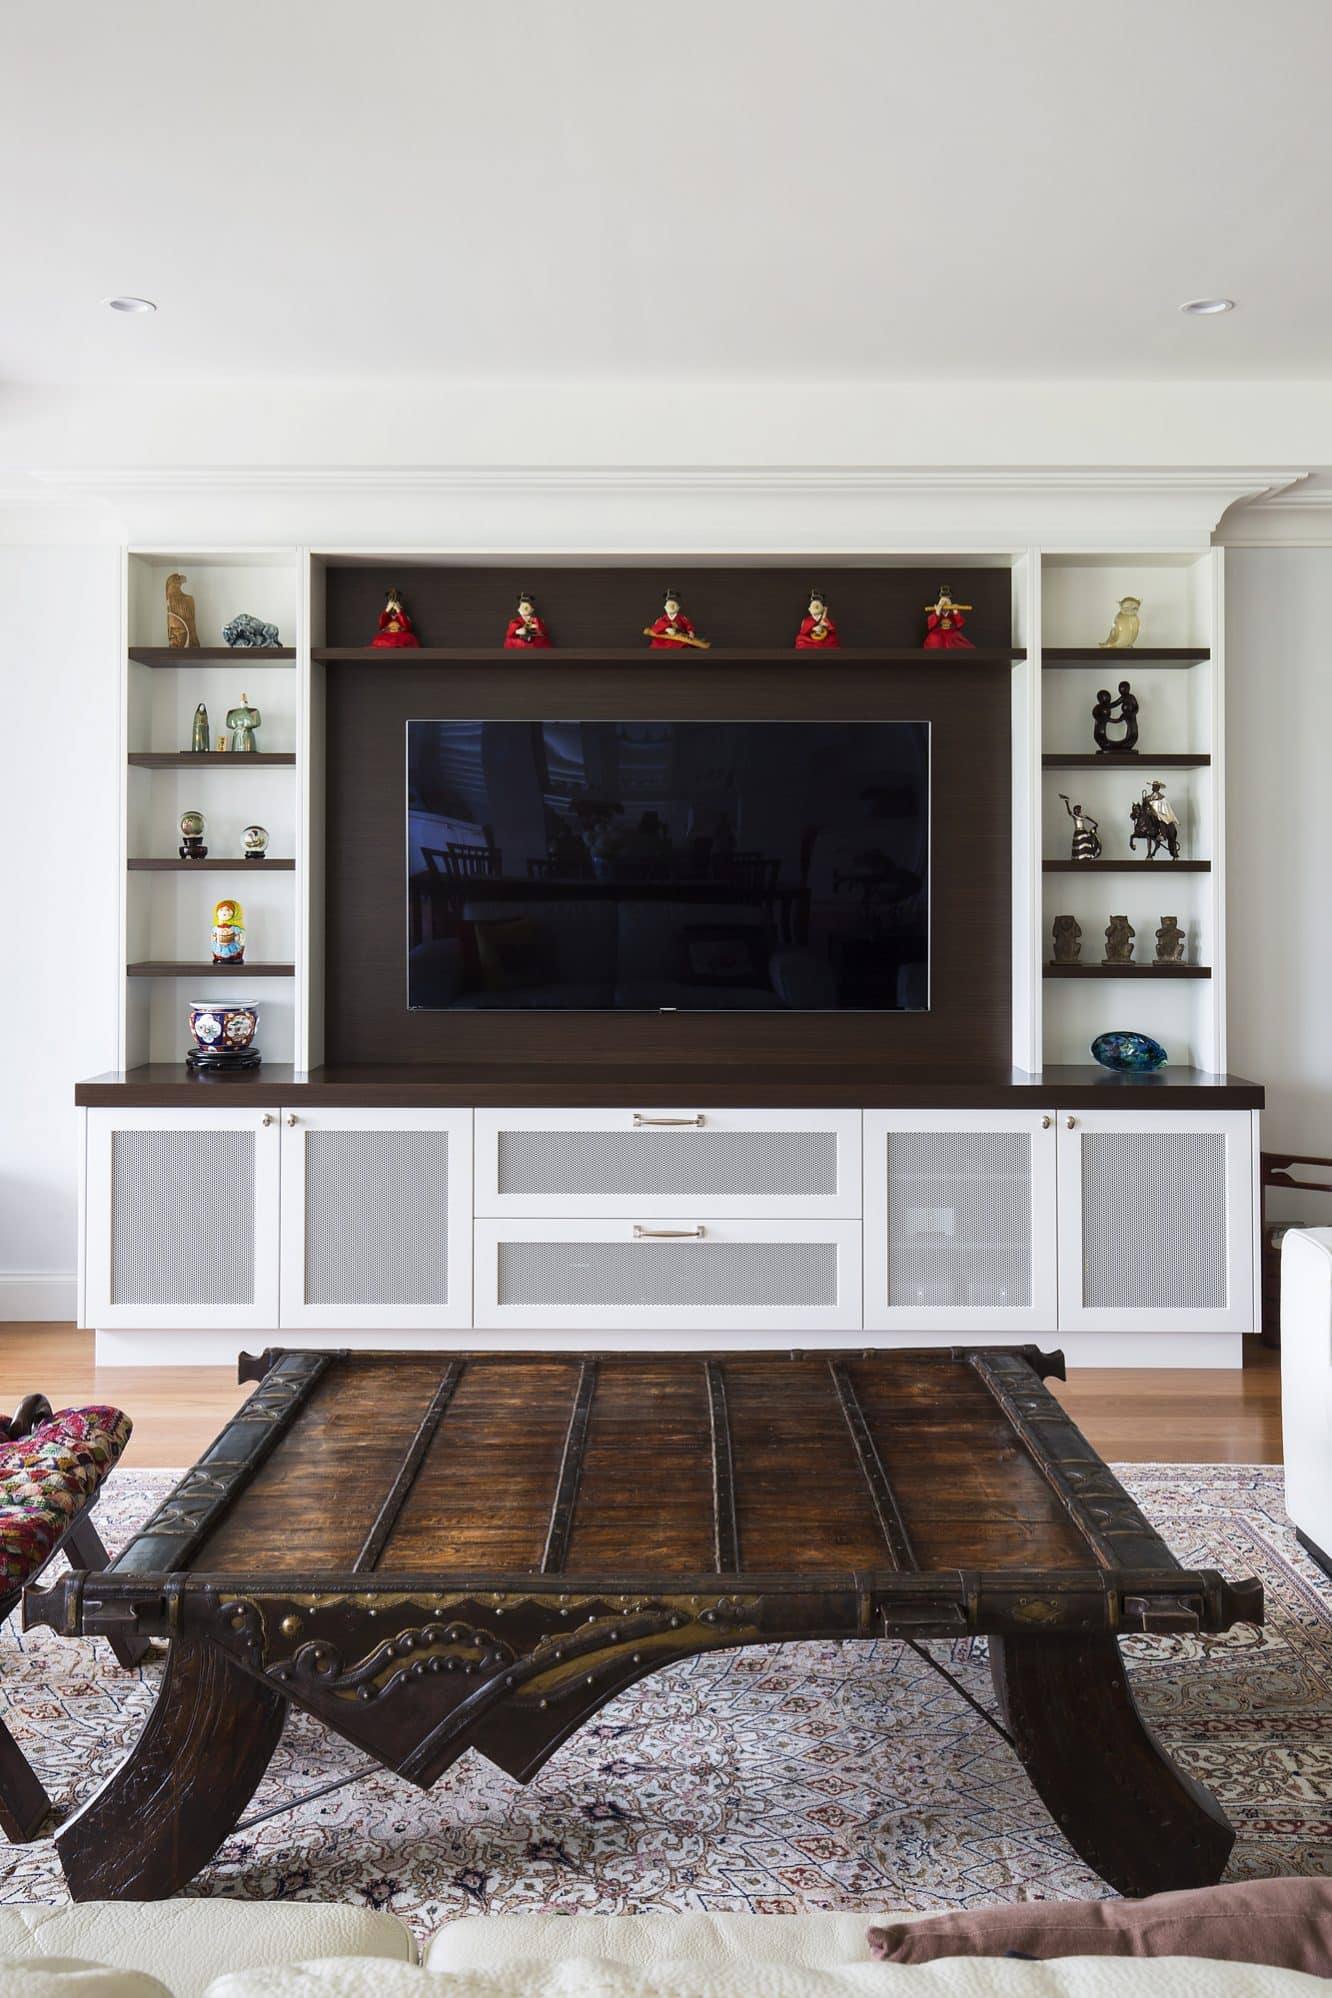 The matching TV unit